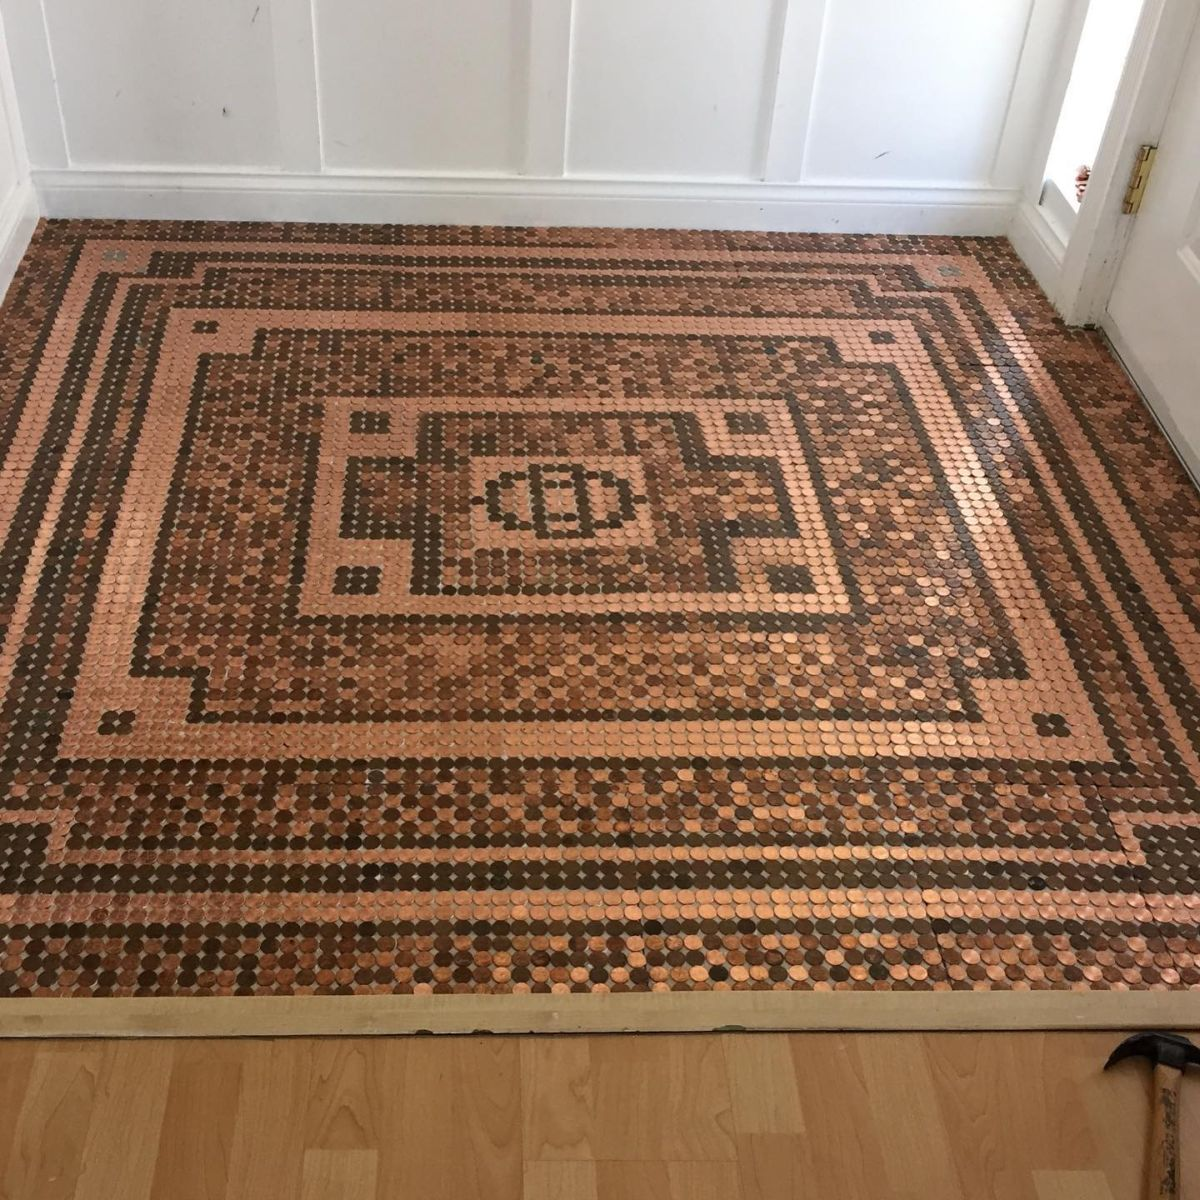 It took 7,500 pennies to cover up this floor area which measures around 6 square feet